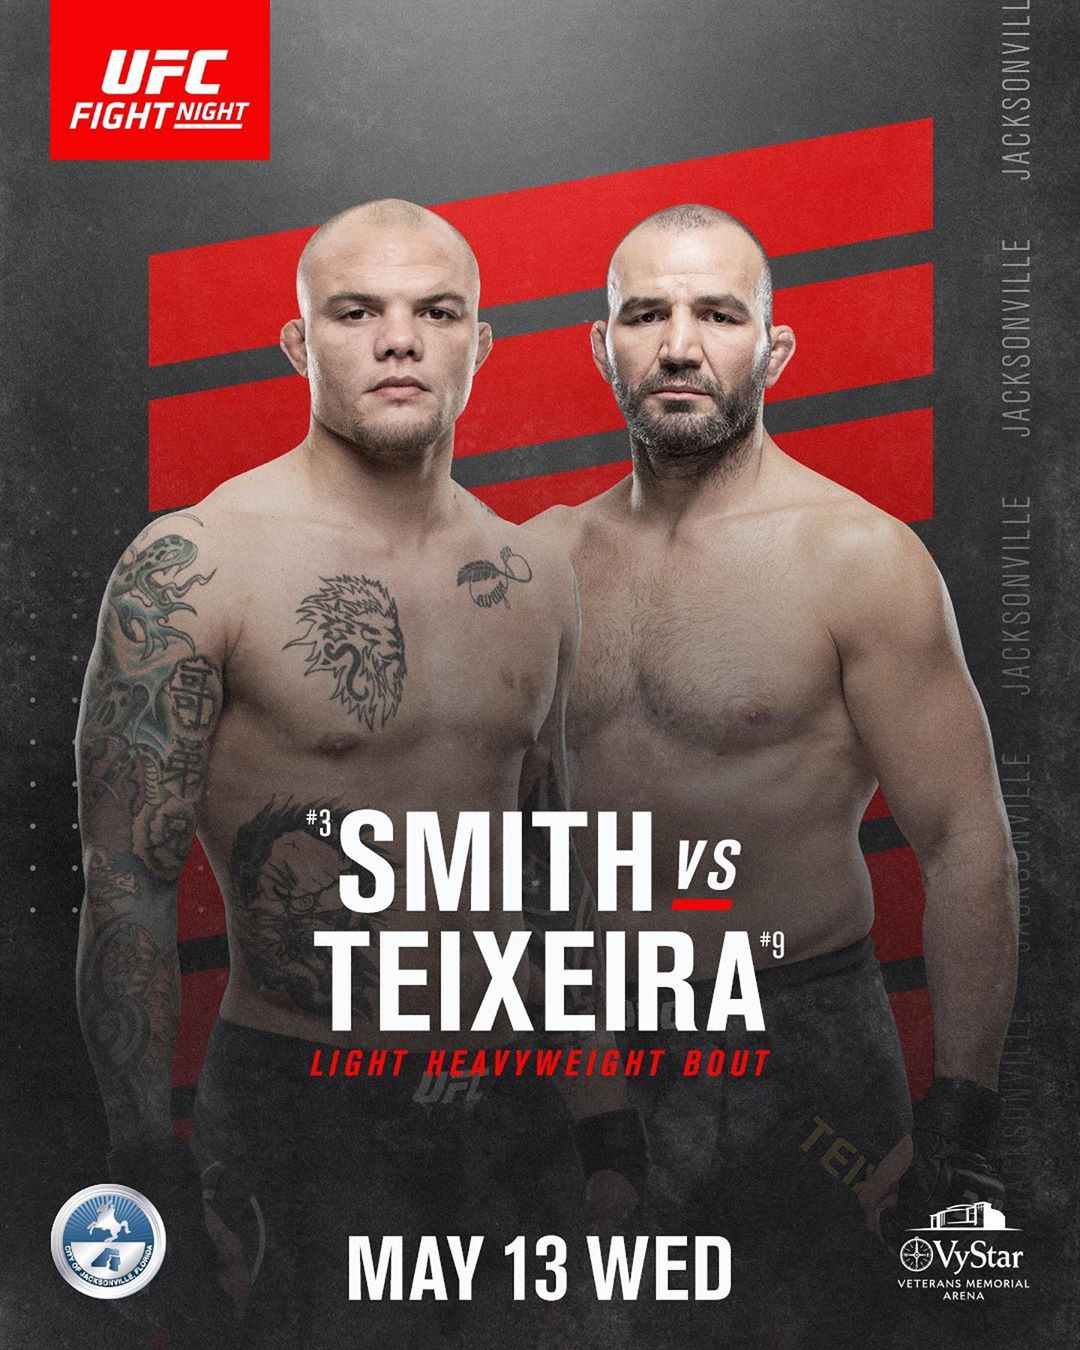 poster for UFC Fight Night 171